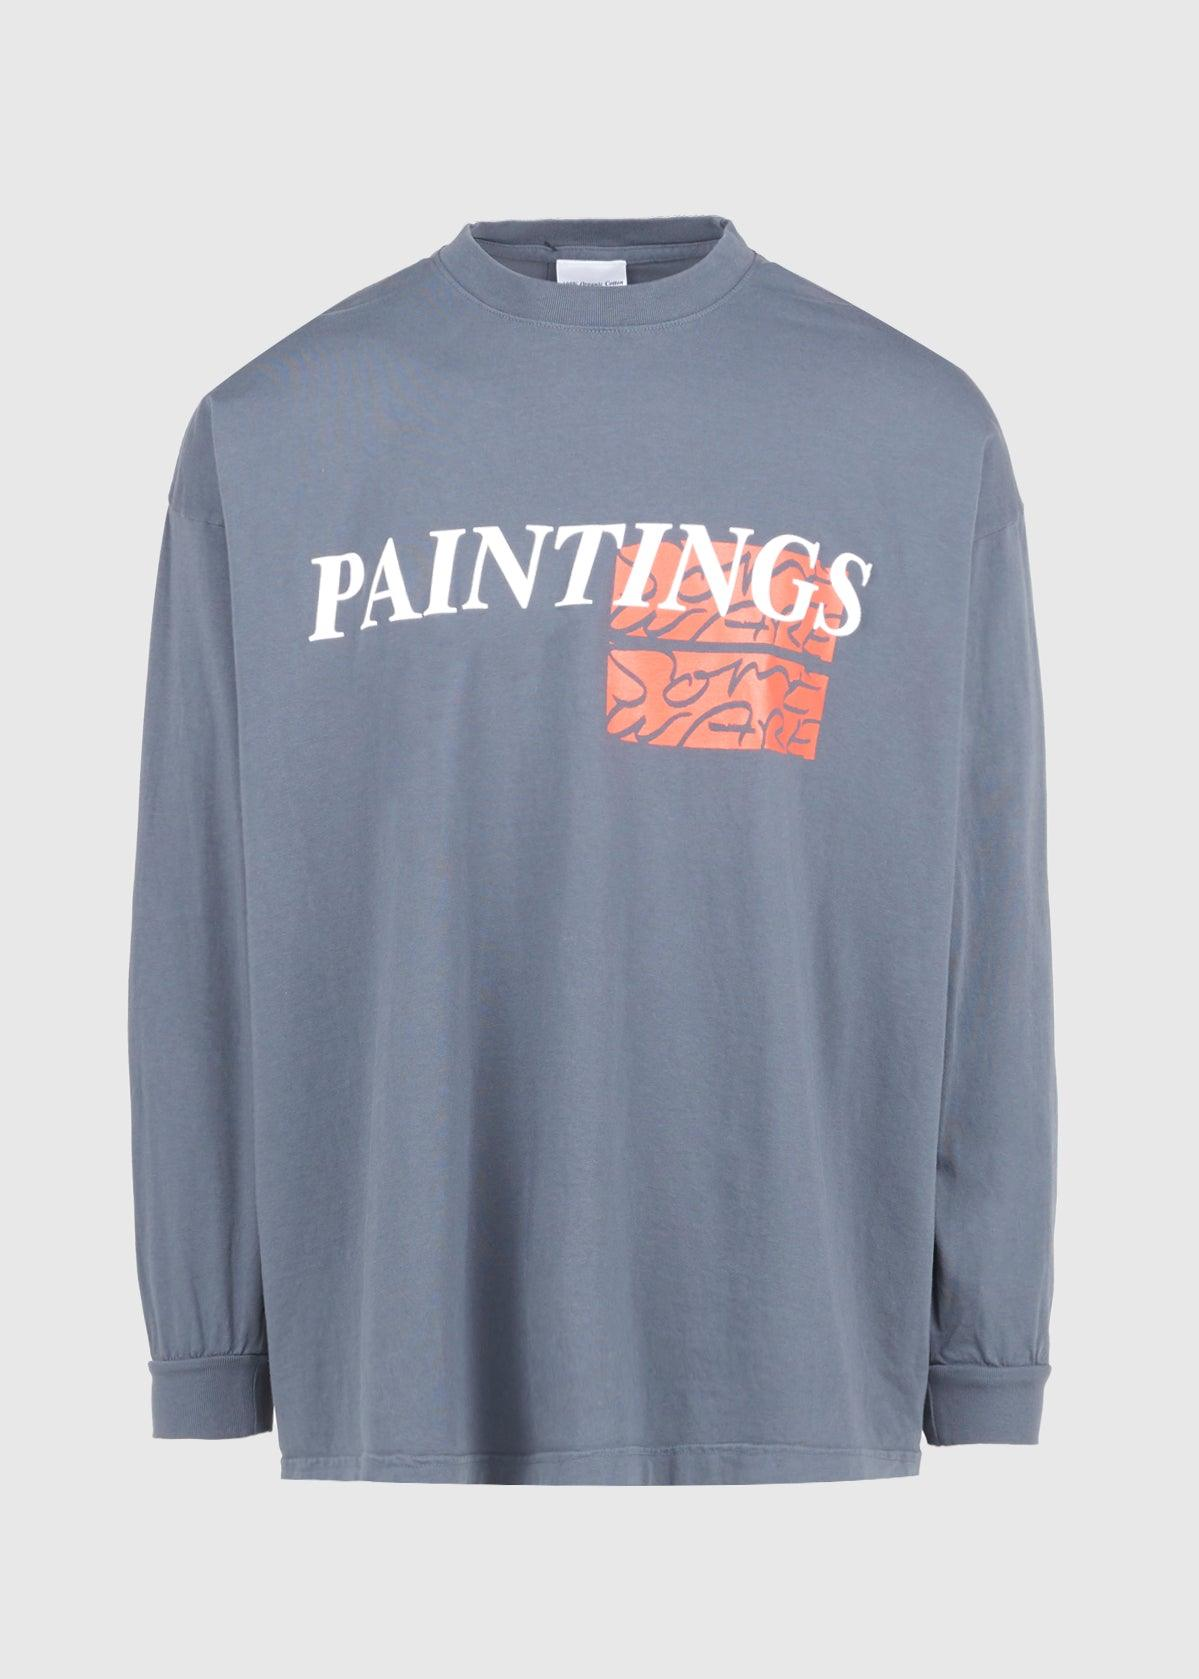 PAINTINGS LONG SLEEVE TEE